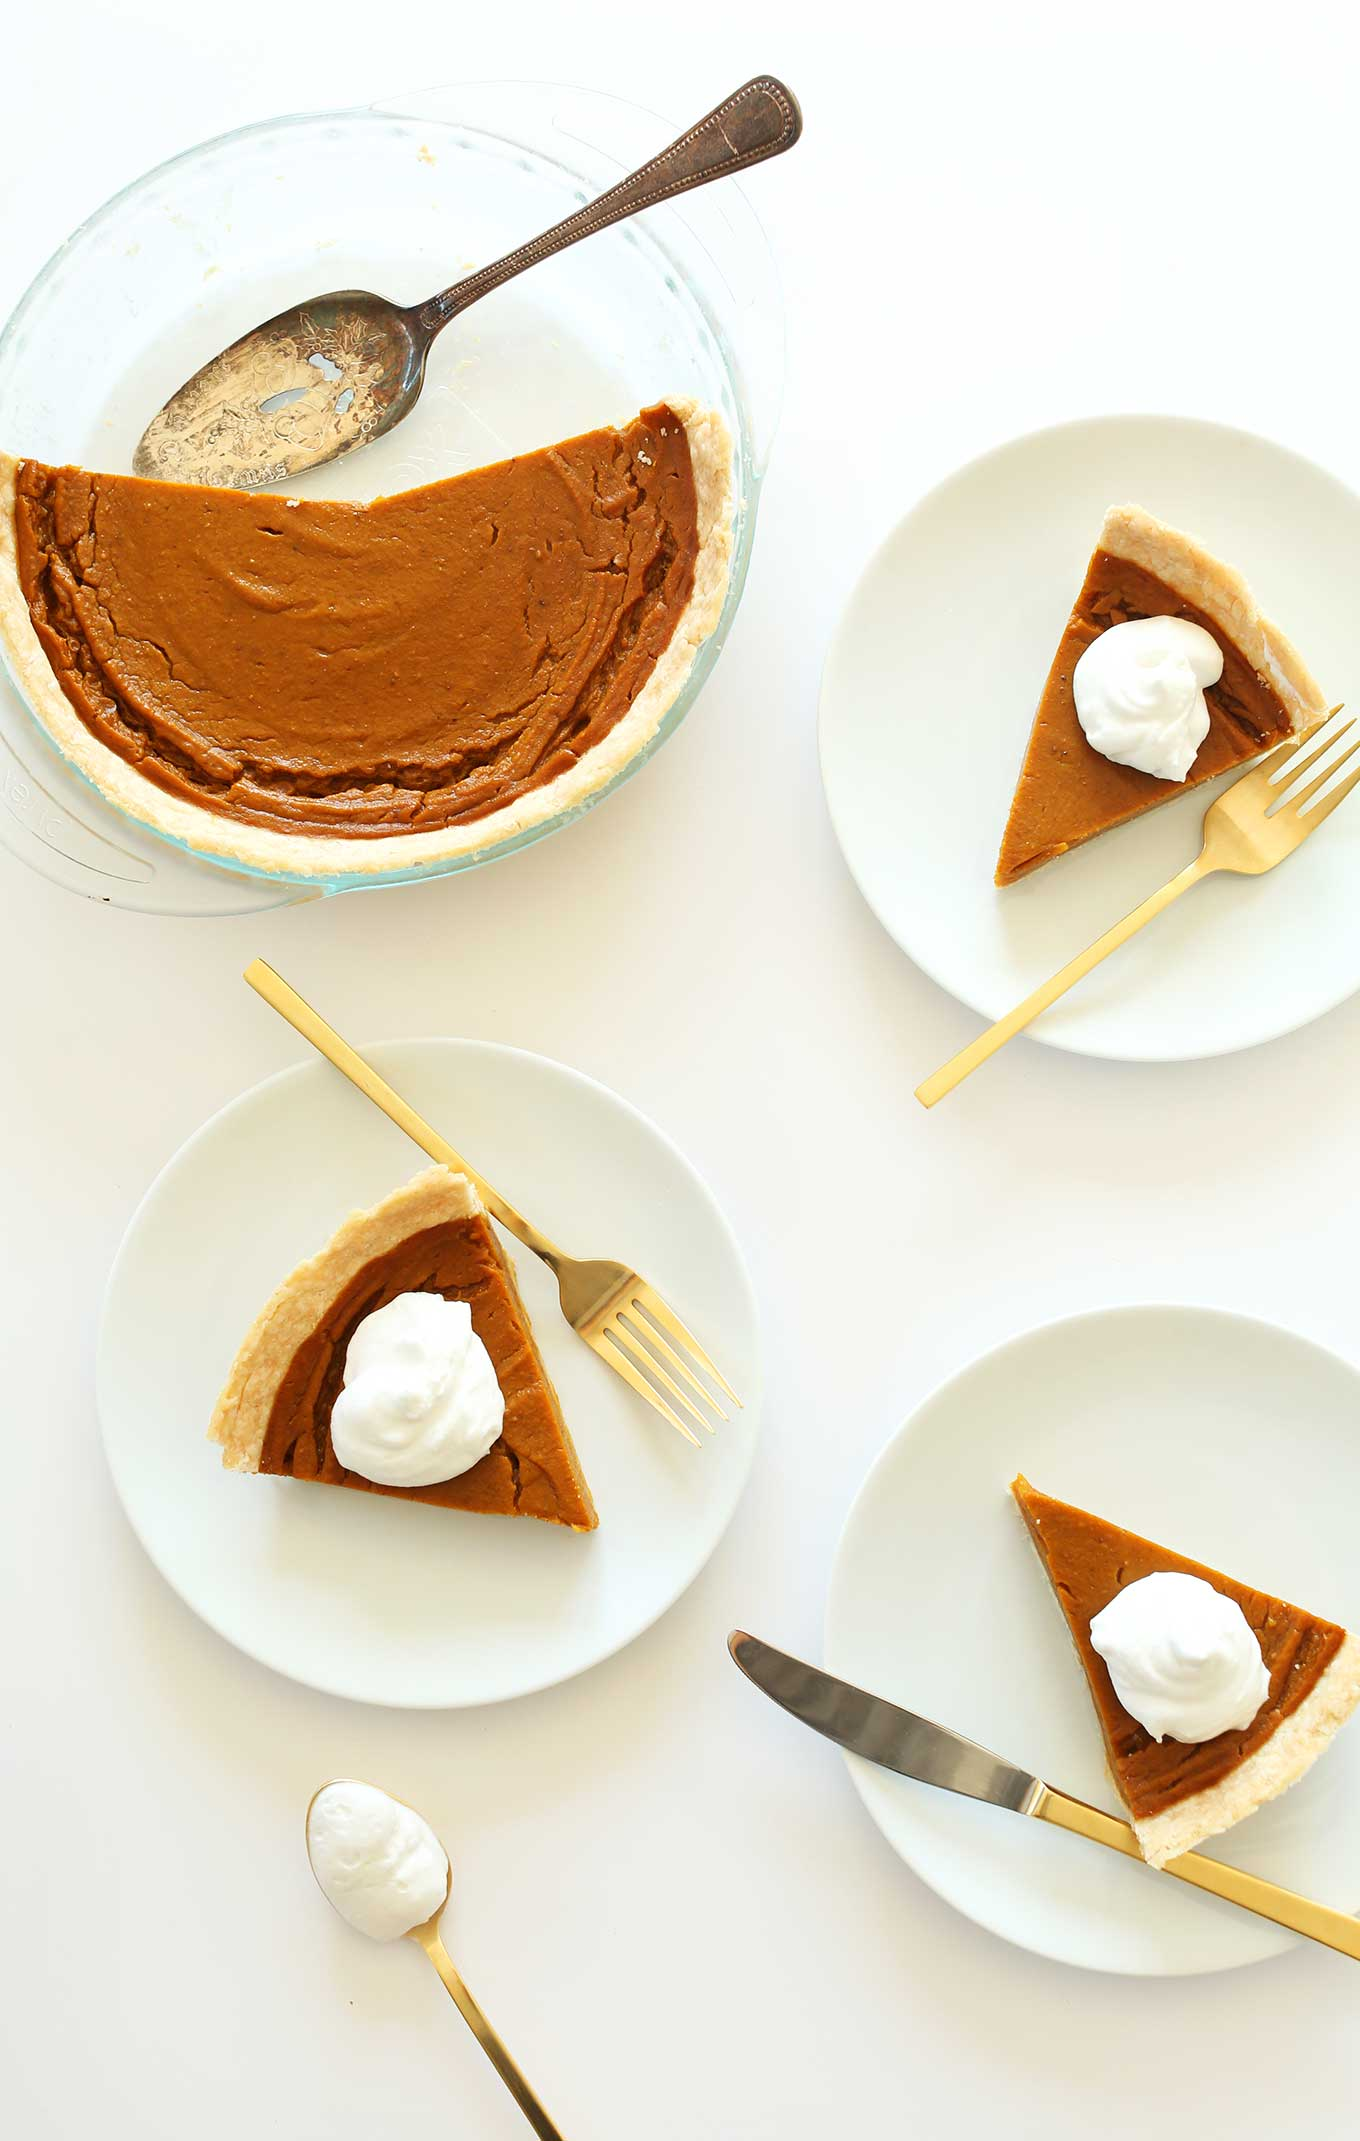 Plates with slices of Vegan Gluten-Free Pumpkin Pie and a pie pan with the rest